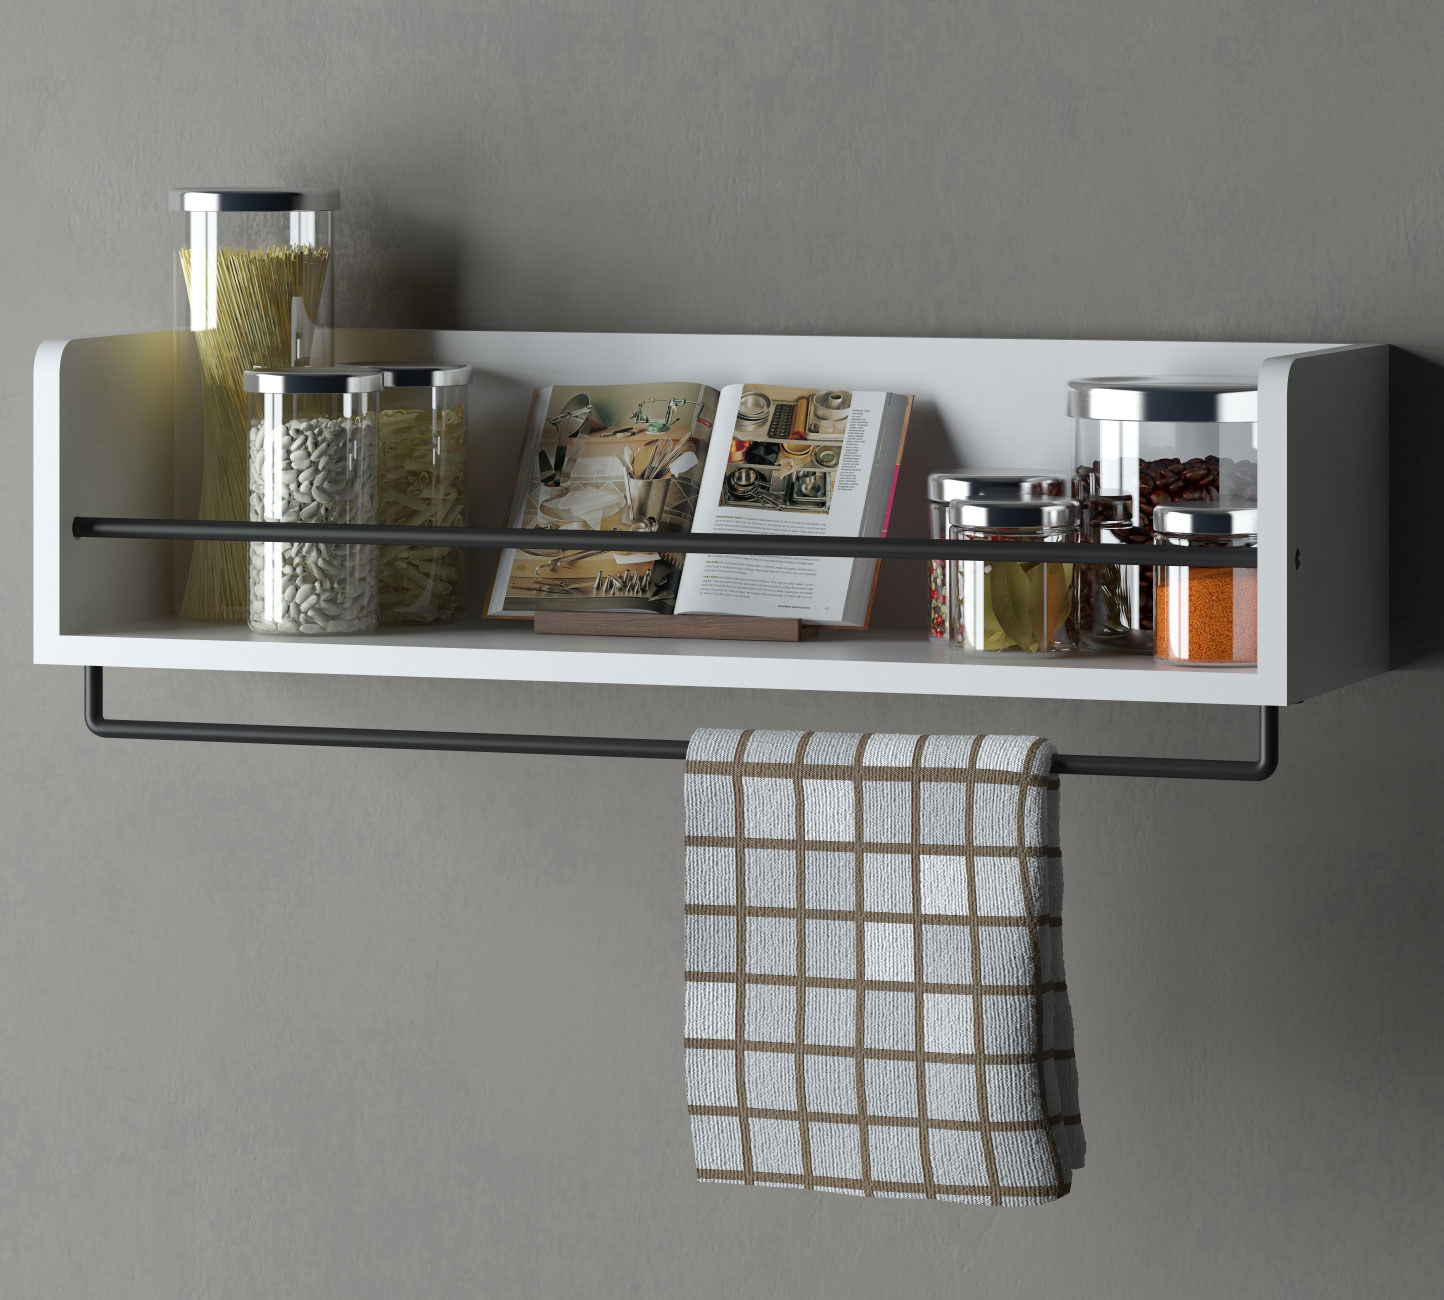 white shelf with black metal bar across it and another below it for a hand towel